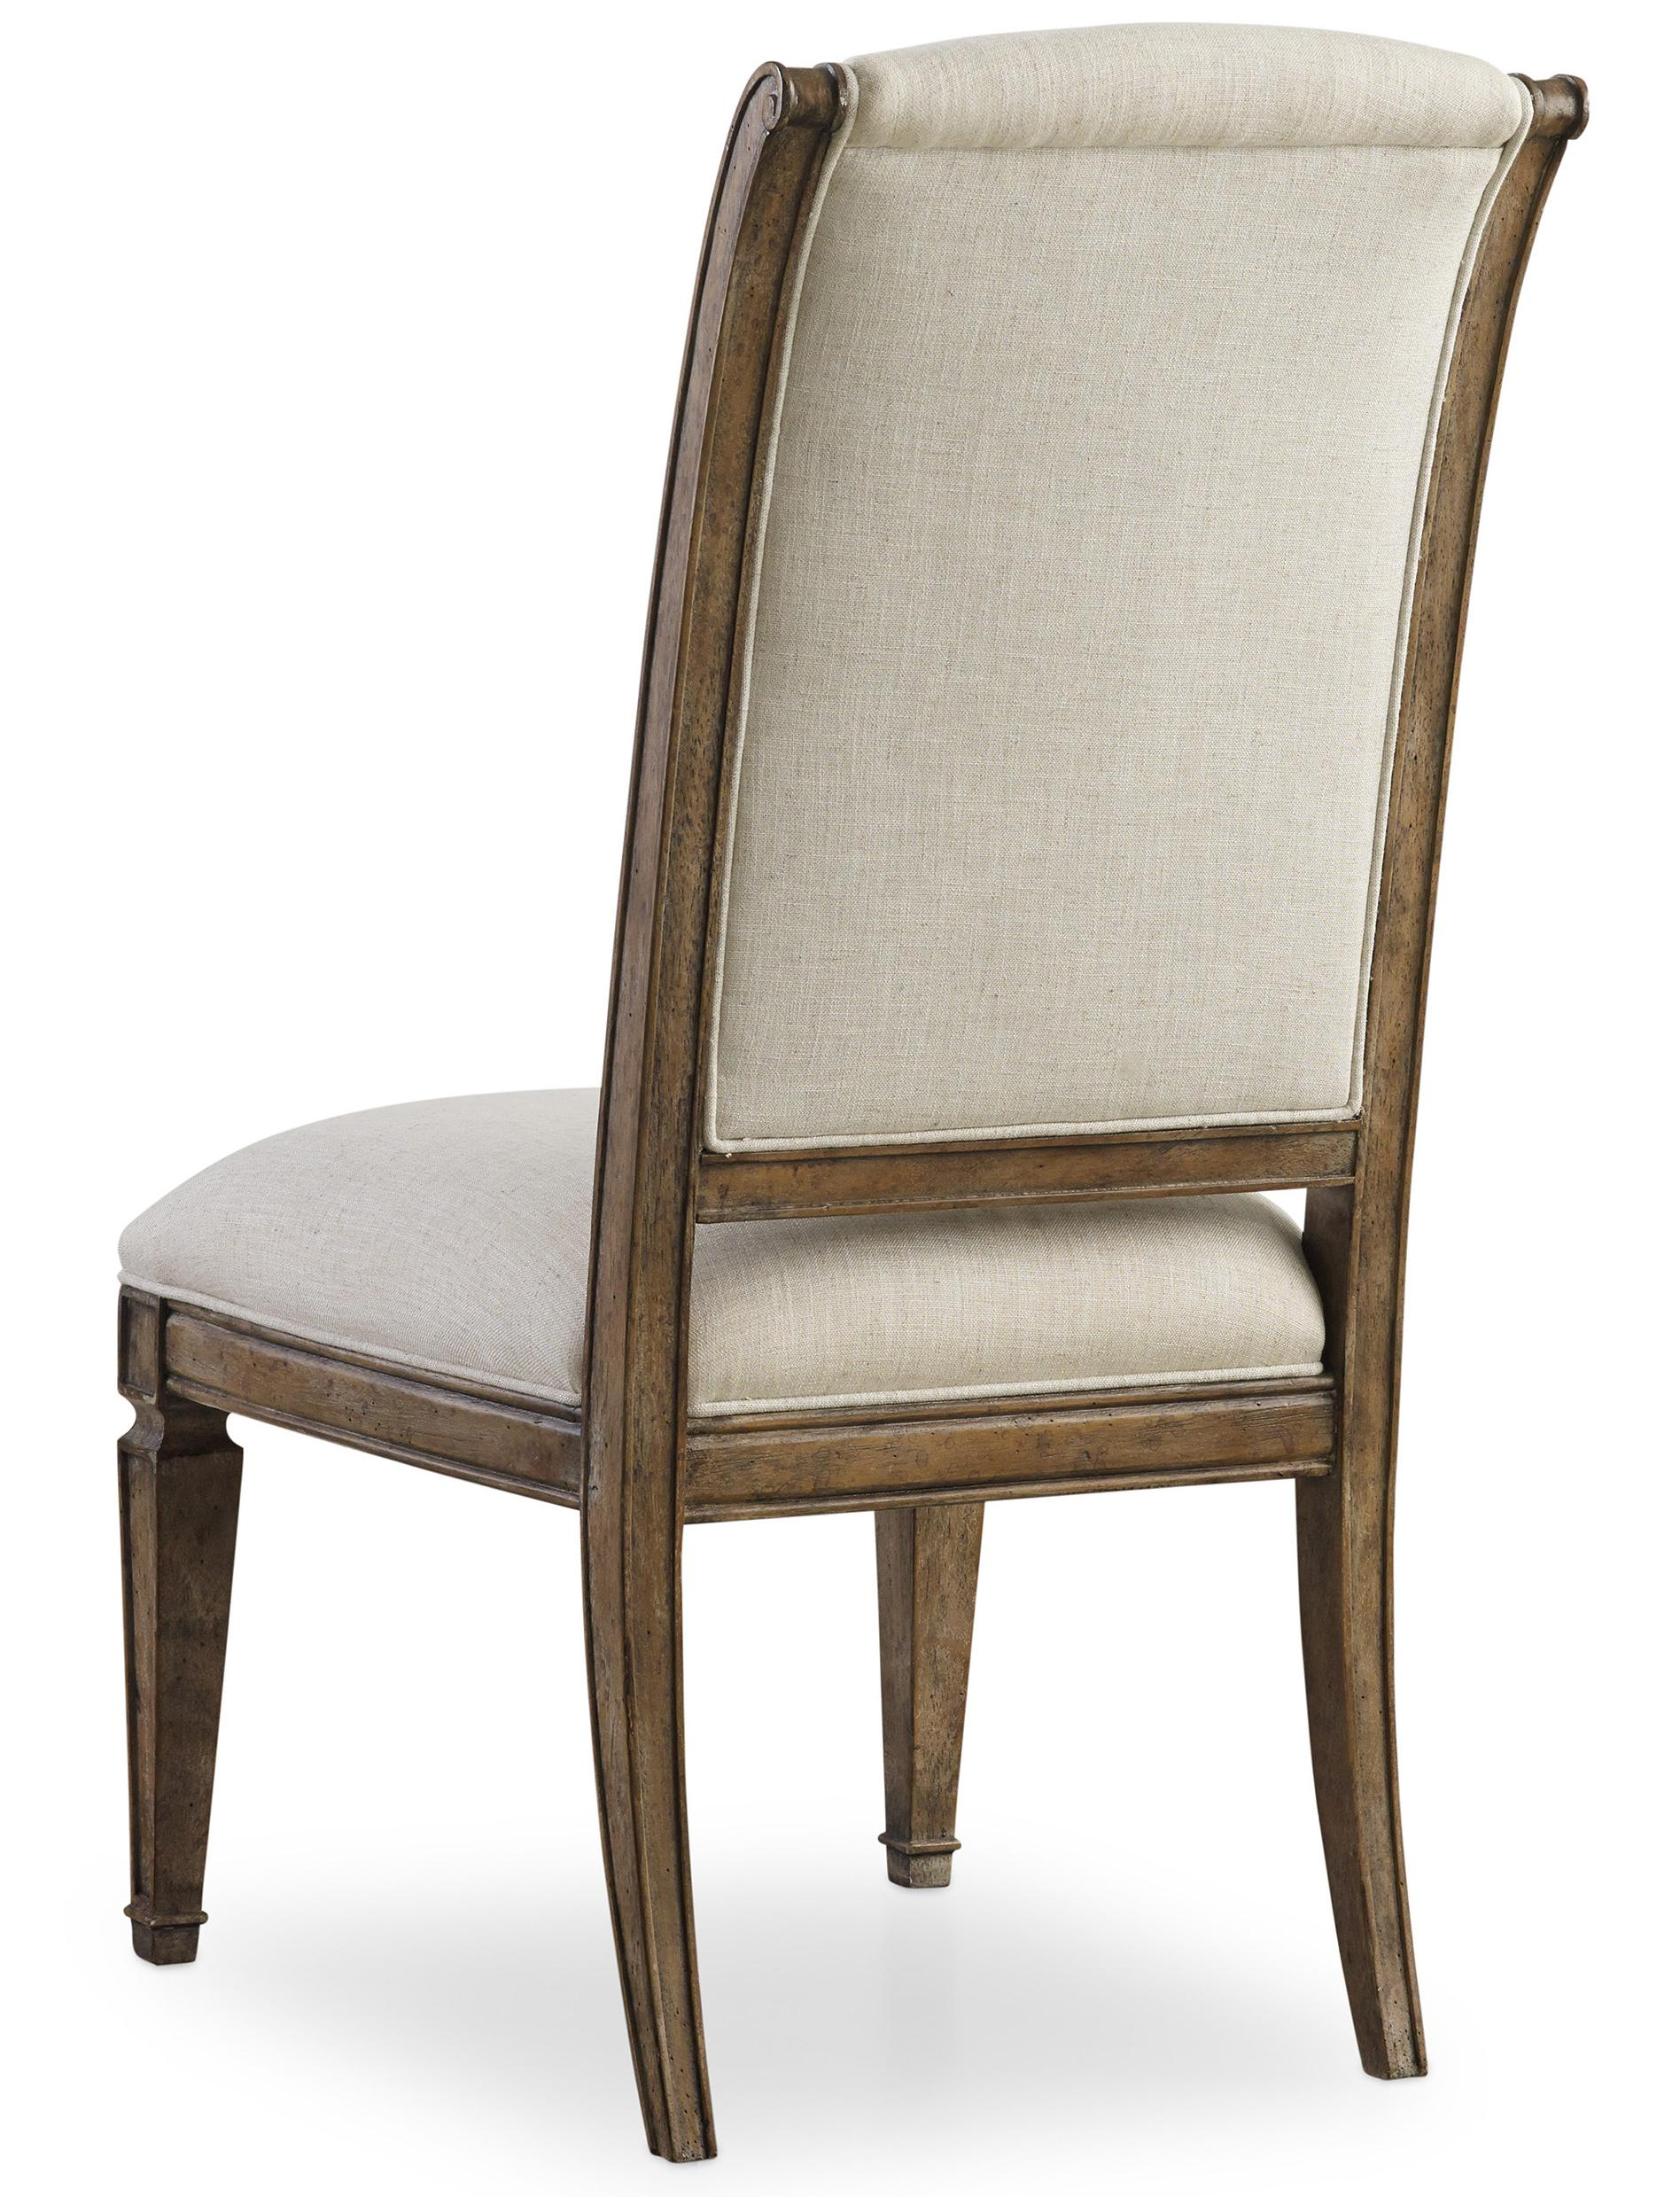 Hooker Furniture Solana 5291 75510 Upholstered Side Chair